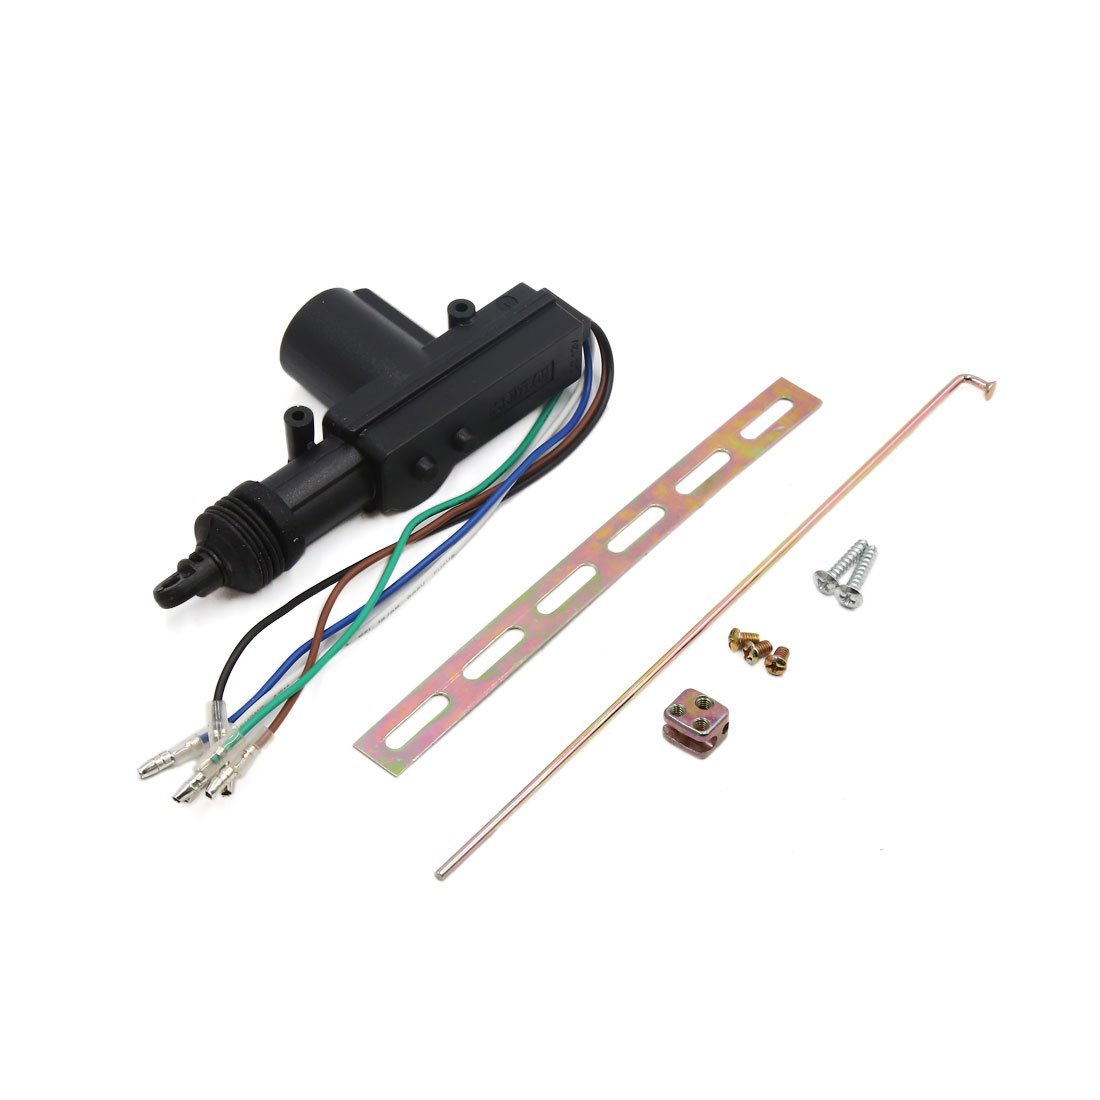 Uxcell Car Central Locking System Keyless Entry With 4 Power Lock Actuator Wiring For Door Kit A17030700ux1873